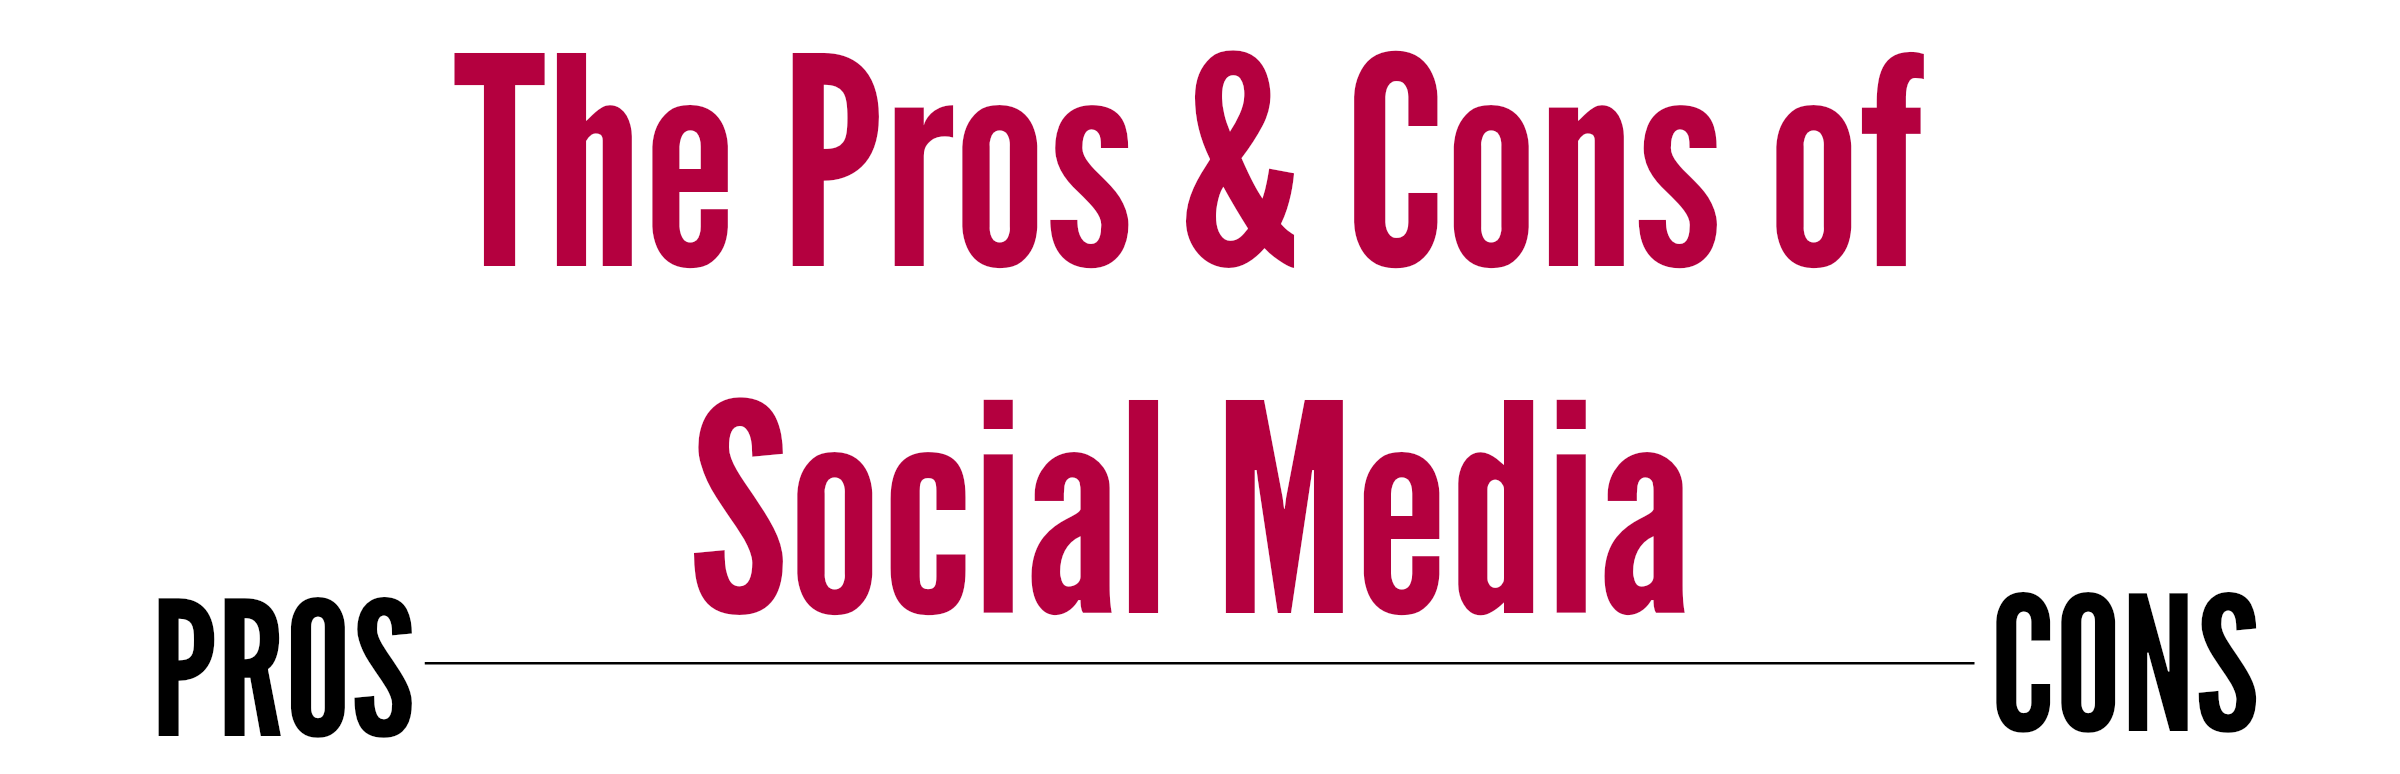 social media pros cons social media business i created this pro con list given the experiences i have had while growing up social media throughout my life though it look like the cons